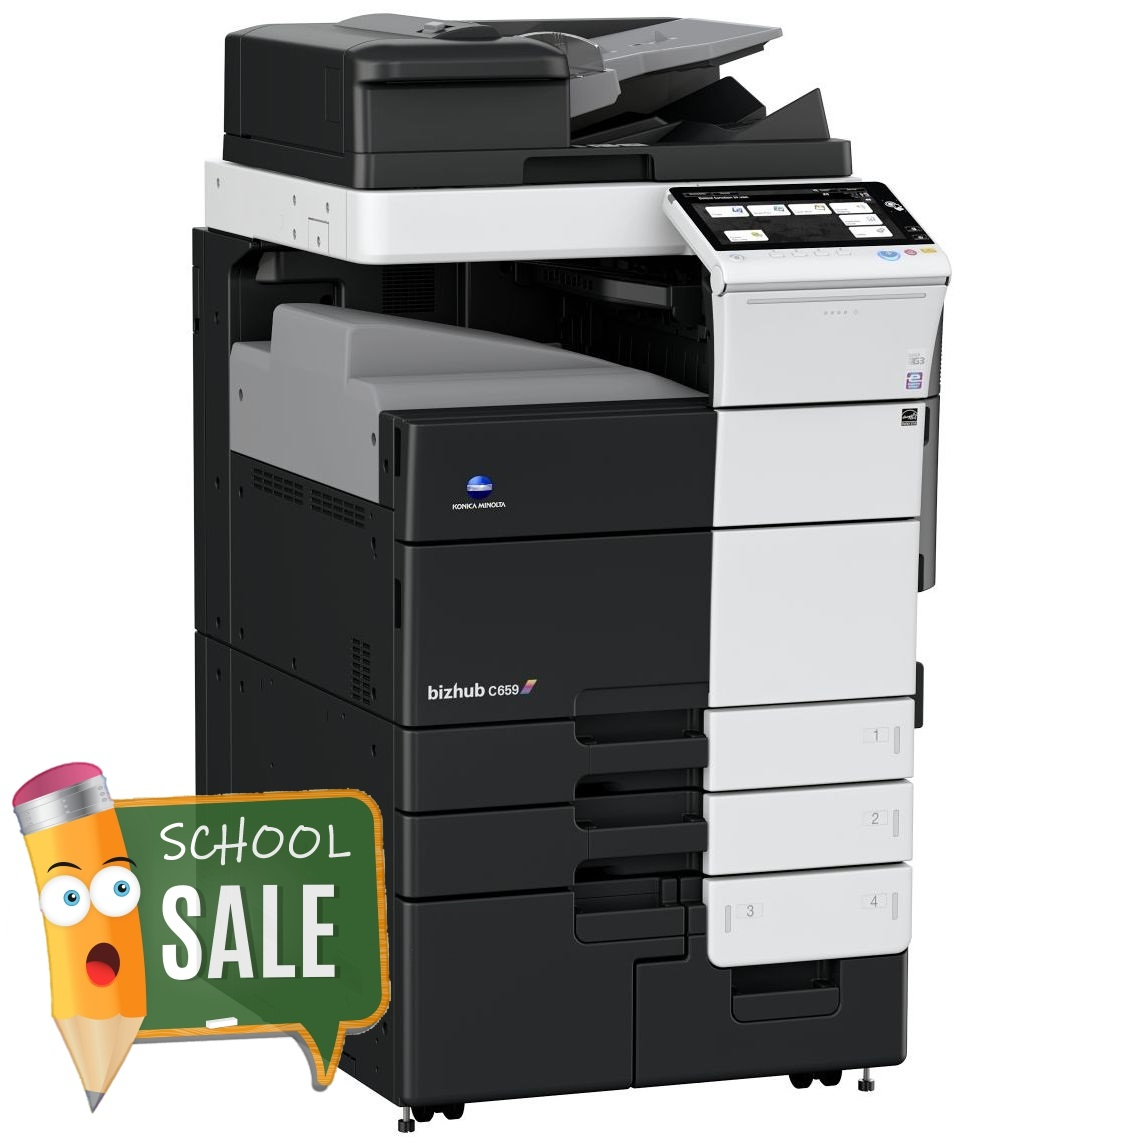 Konica Minolta Bizhub C659 OT-508 Colour Copier Printer Rental Price Offers